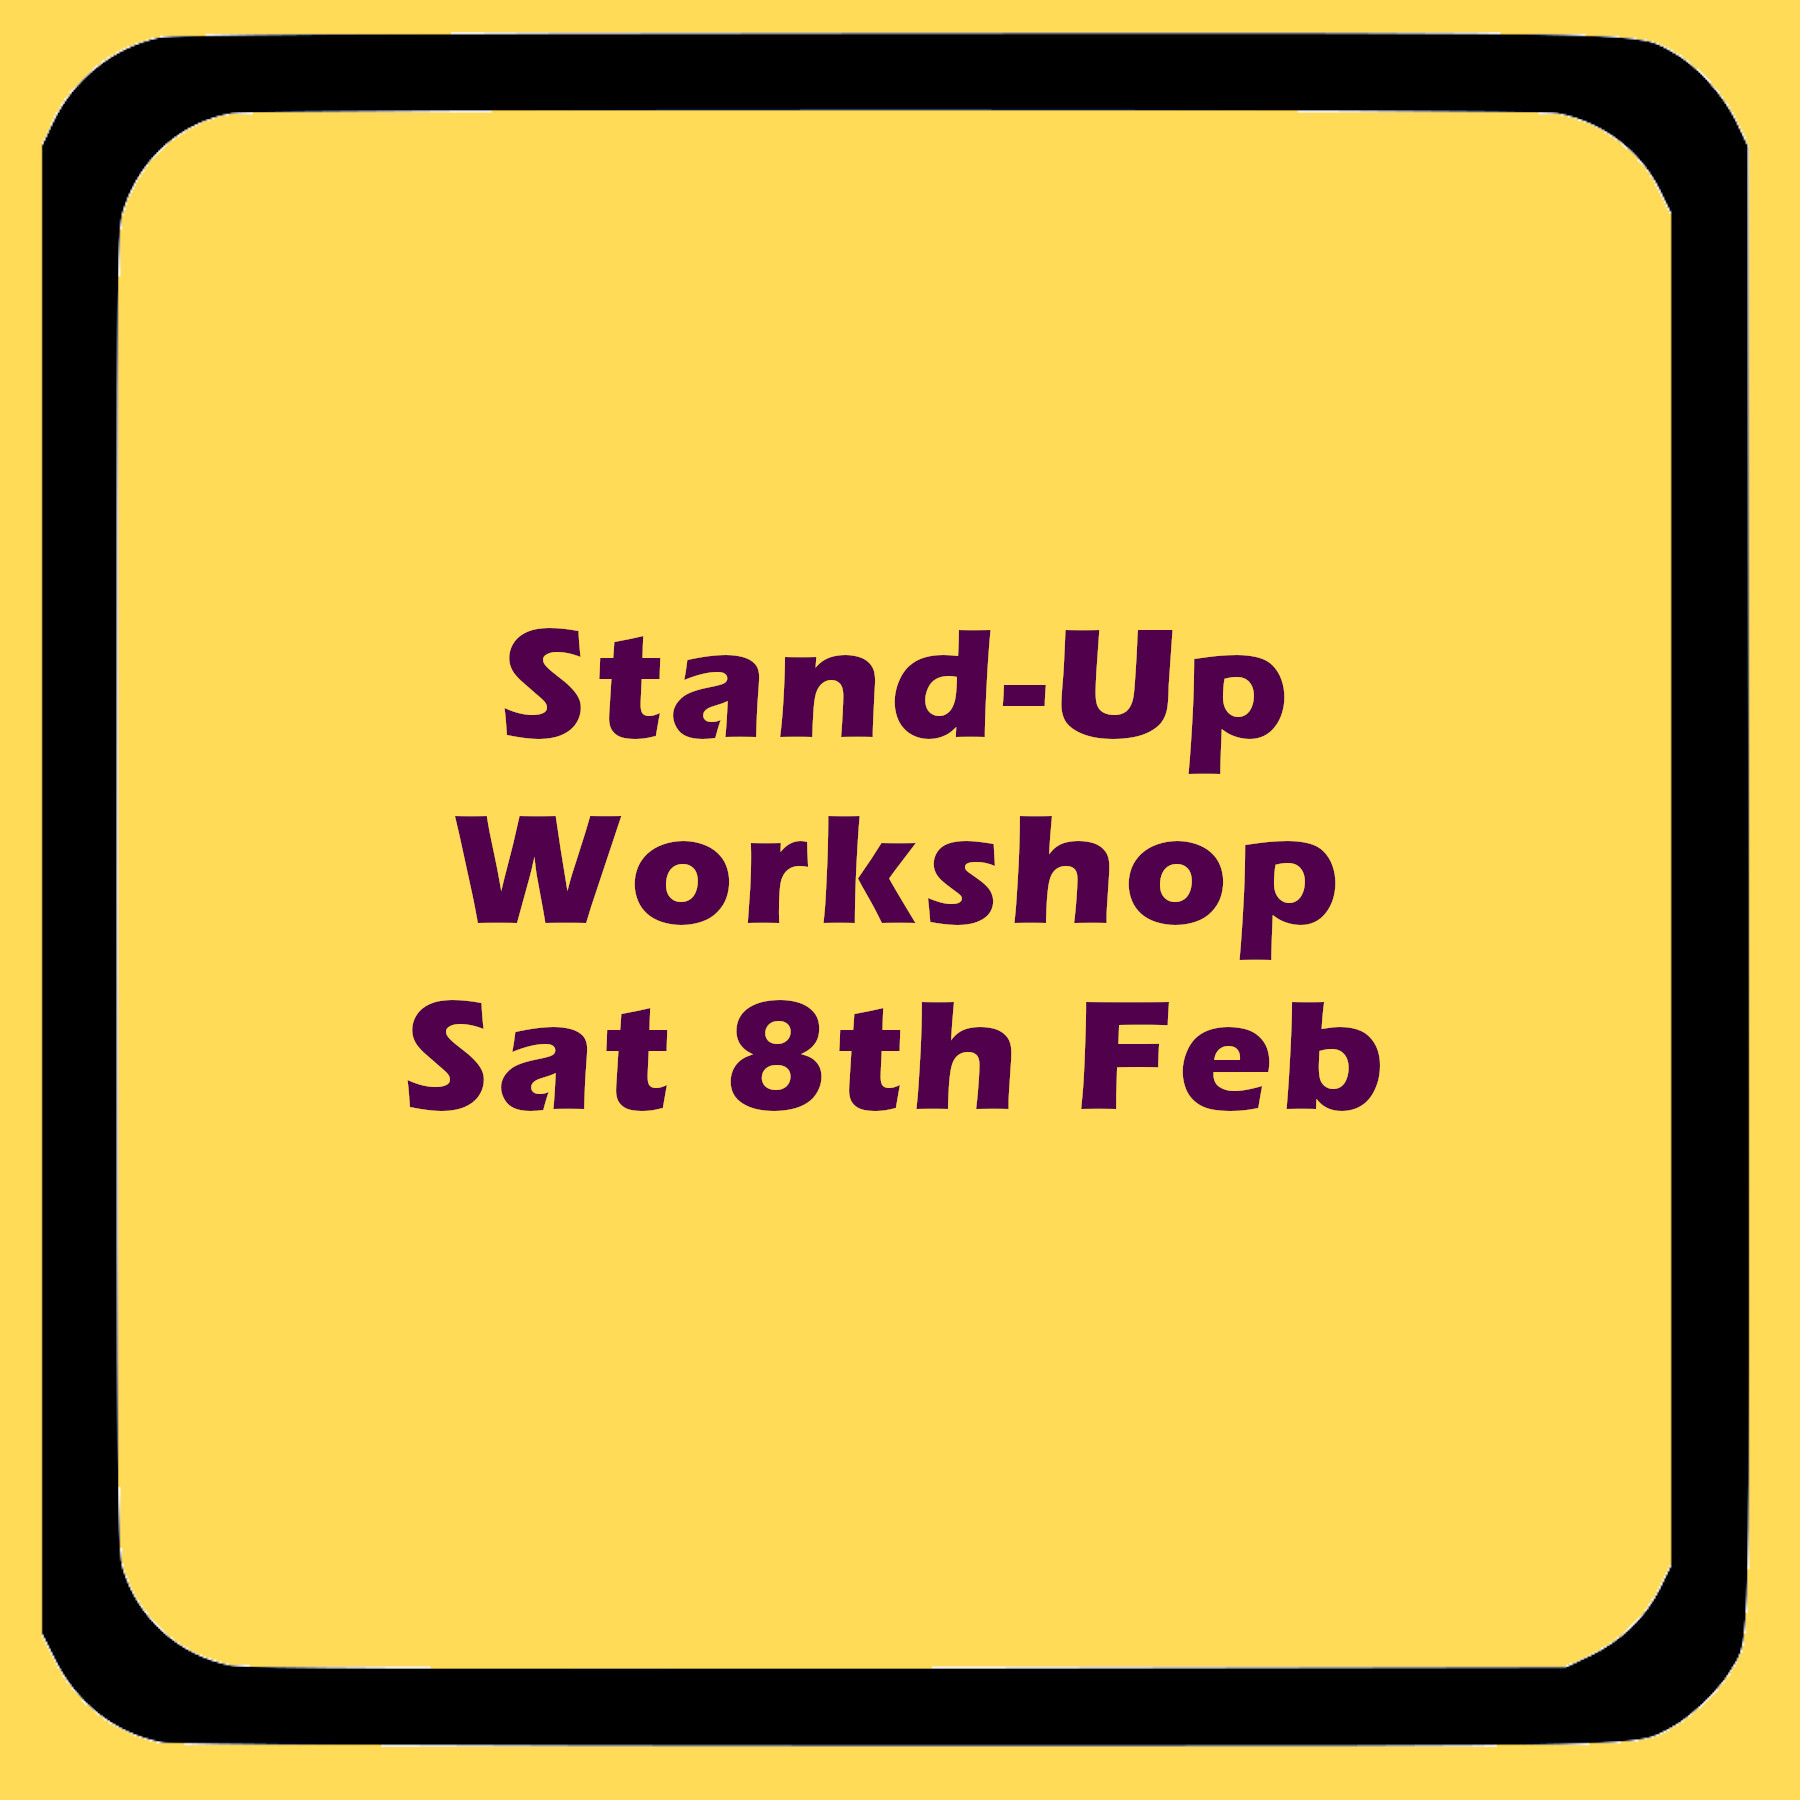 Stand-Up Workshop Place (Sat 8th Feb, 2020)